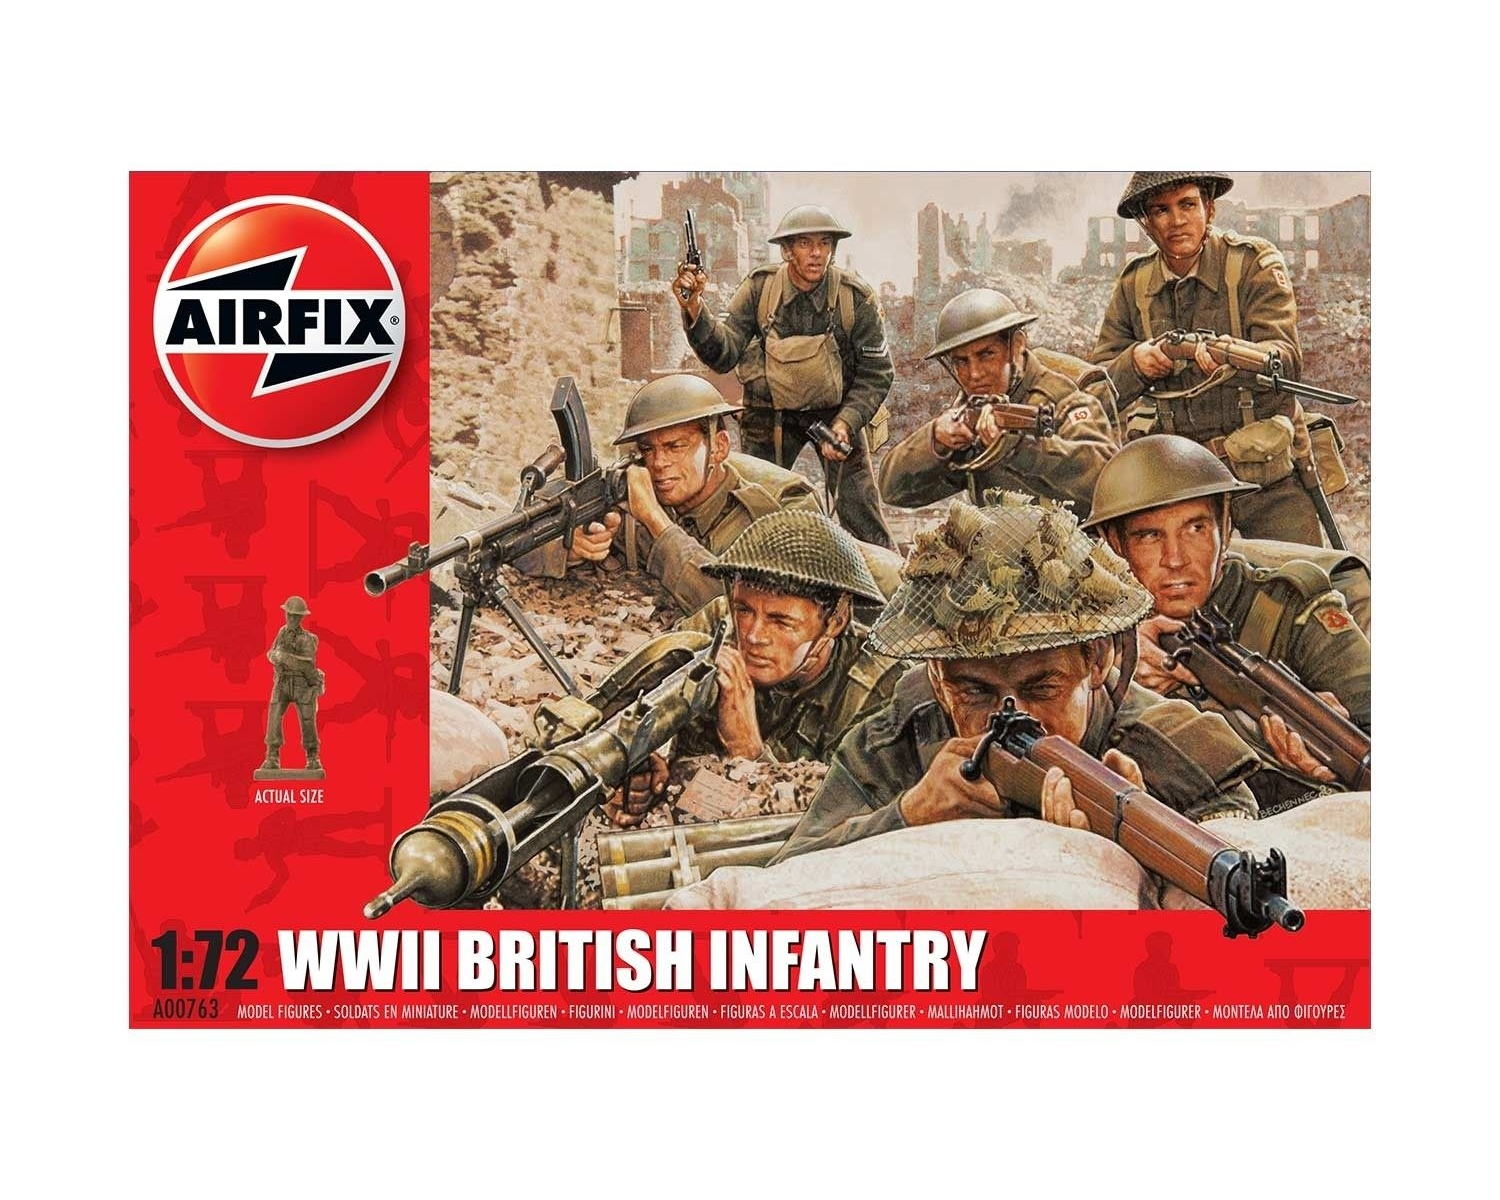 WWII BRITISH INFANTRY N. EUROPE